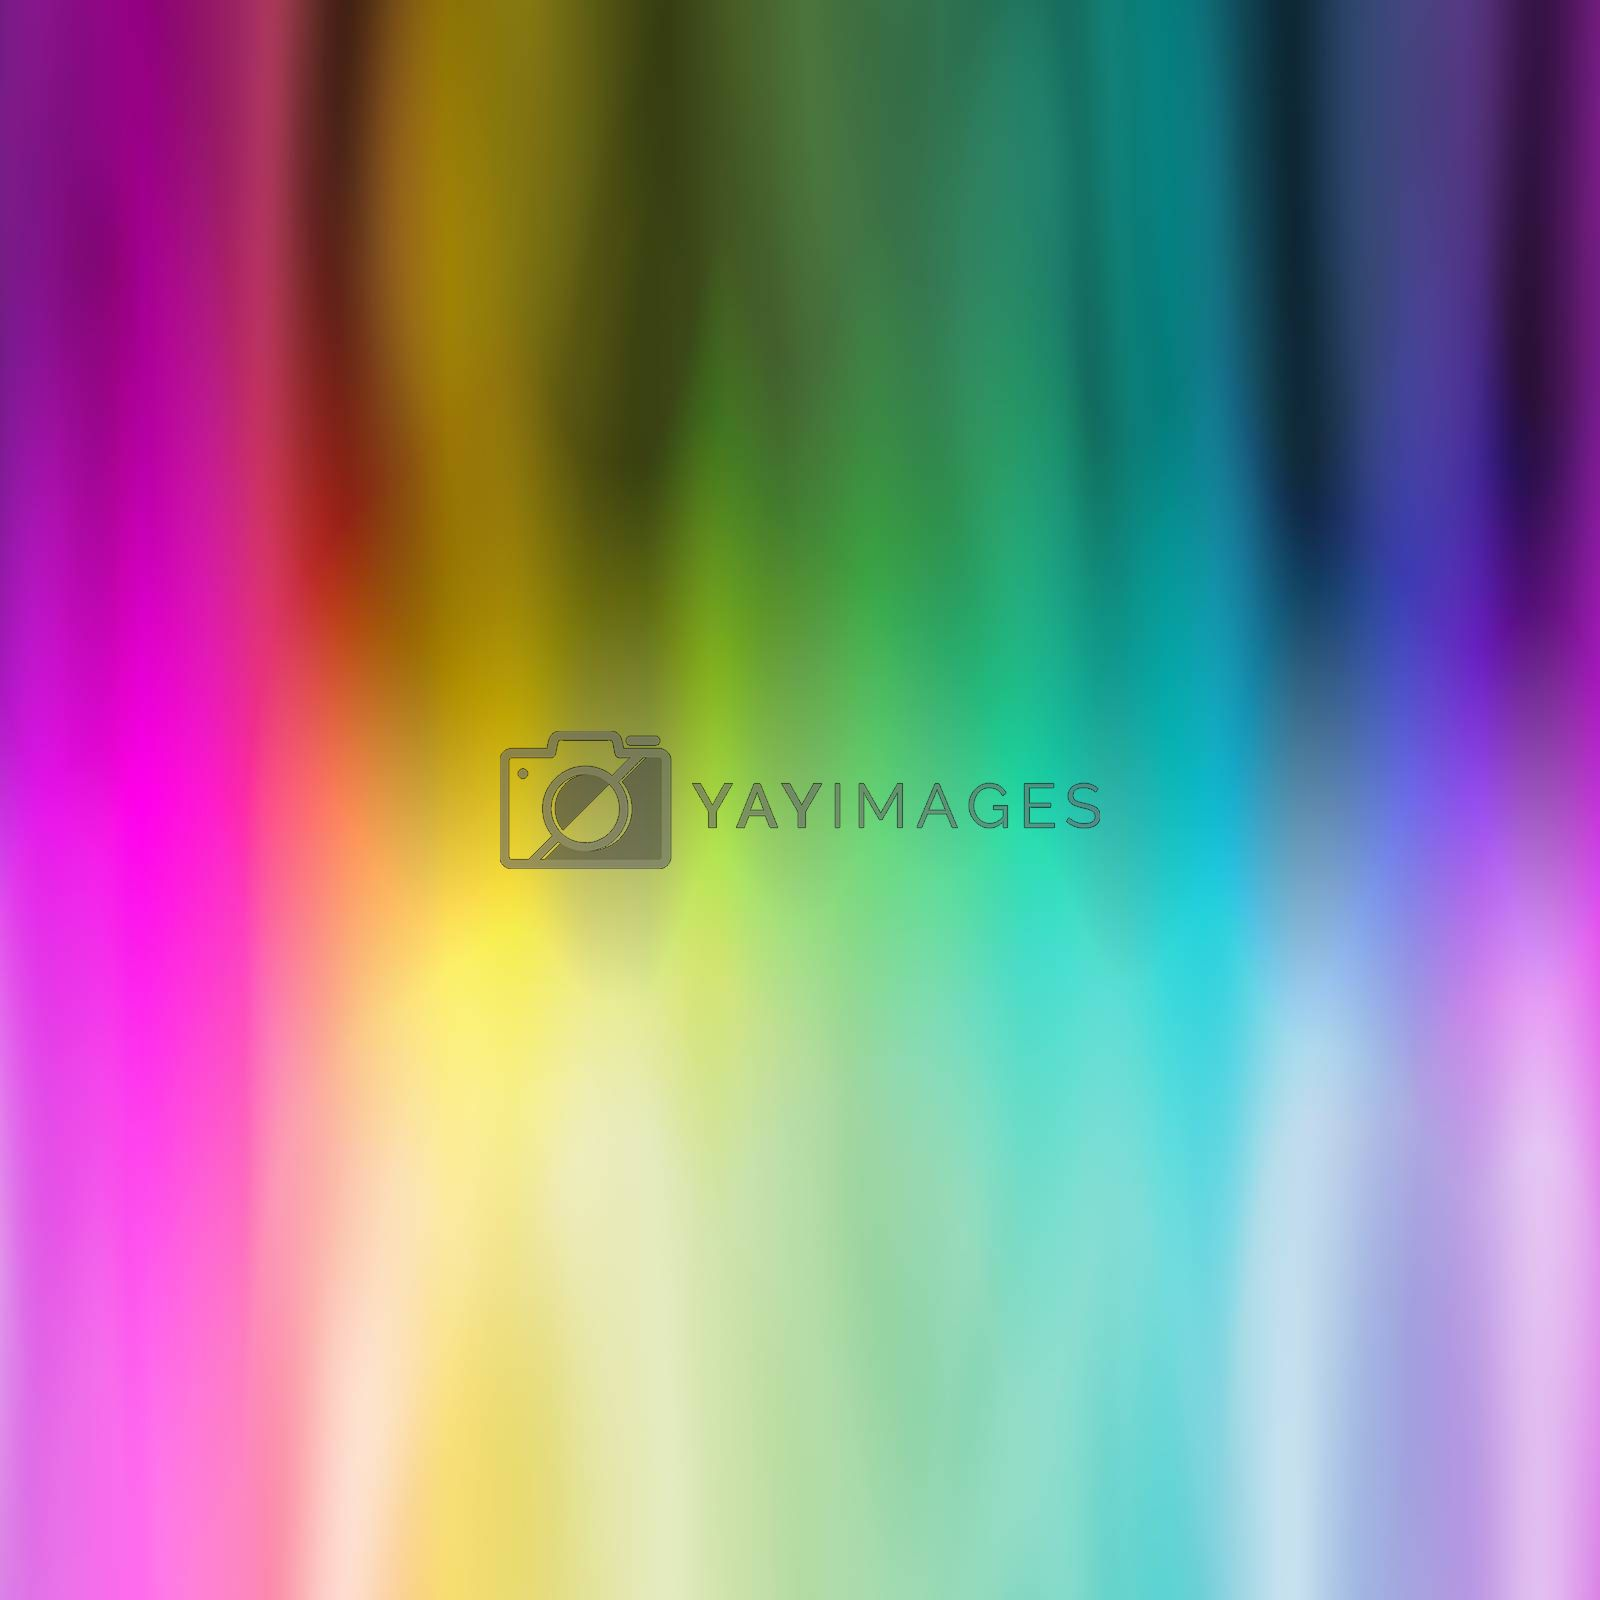 Rainbow abstract background in a variety of vivid colors.